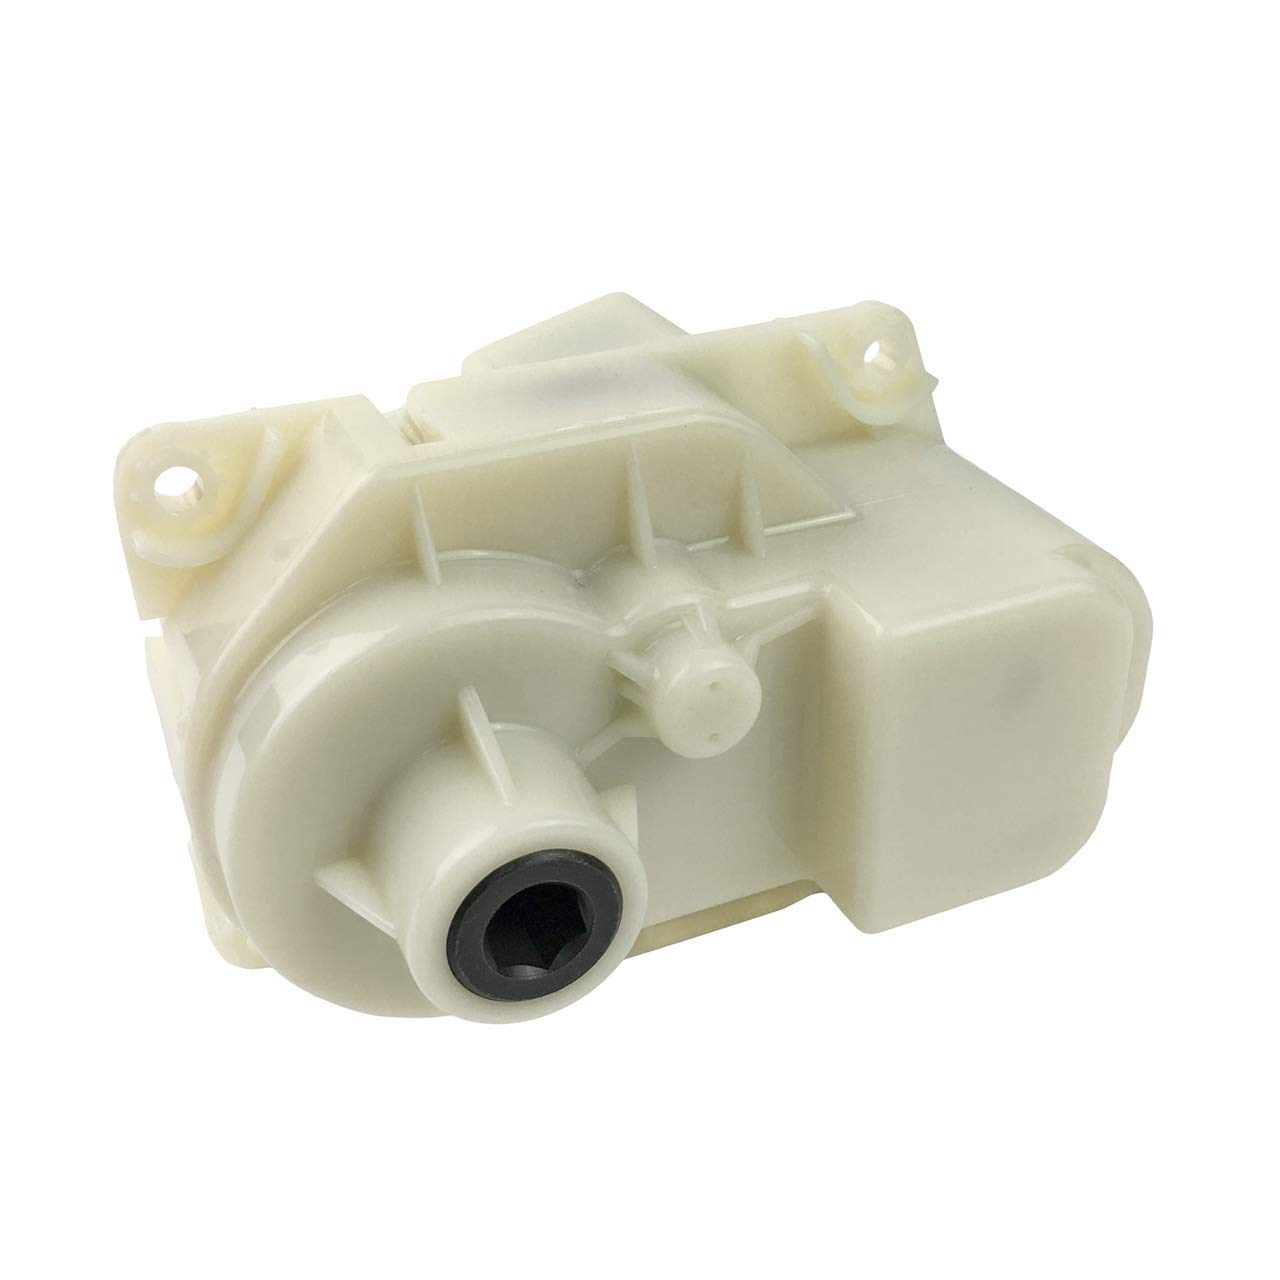 Ximoon W10822606 Ice Auger Gear Motor for Whirlpool, Sears, Kenmore AP5985114, PS11723175, W10271506 1550092